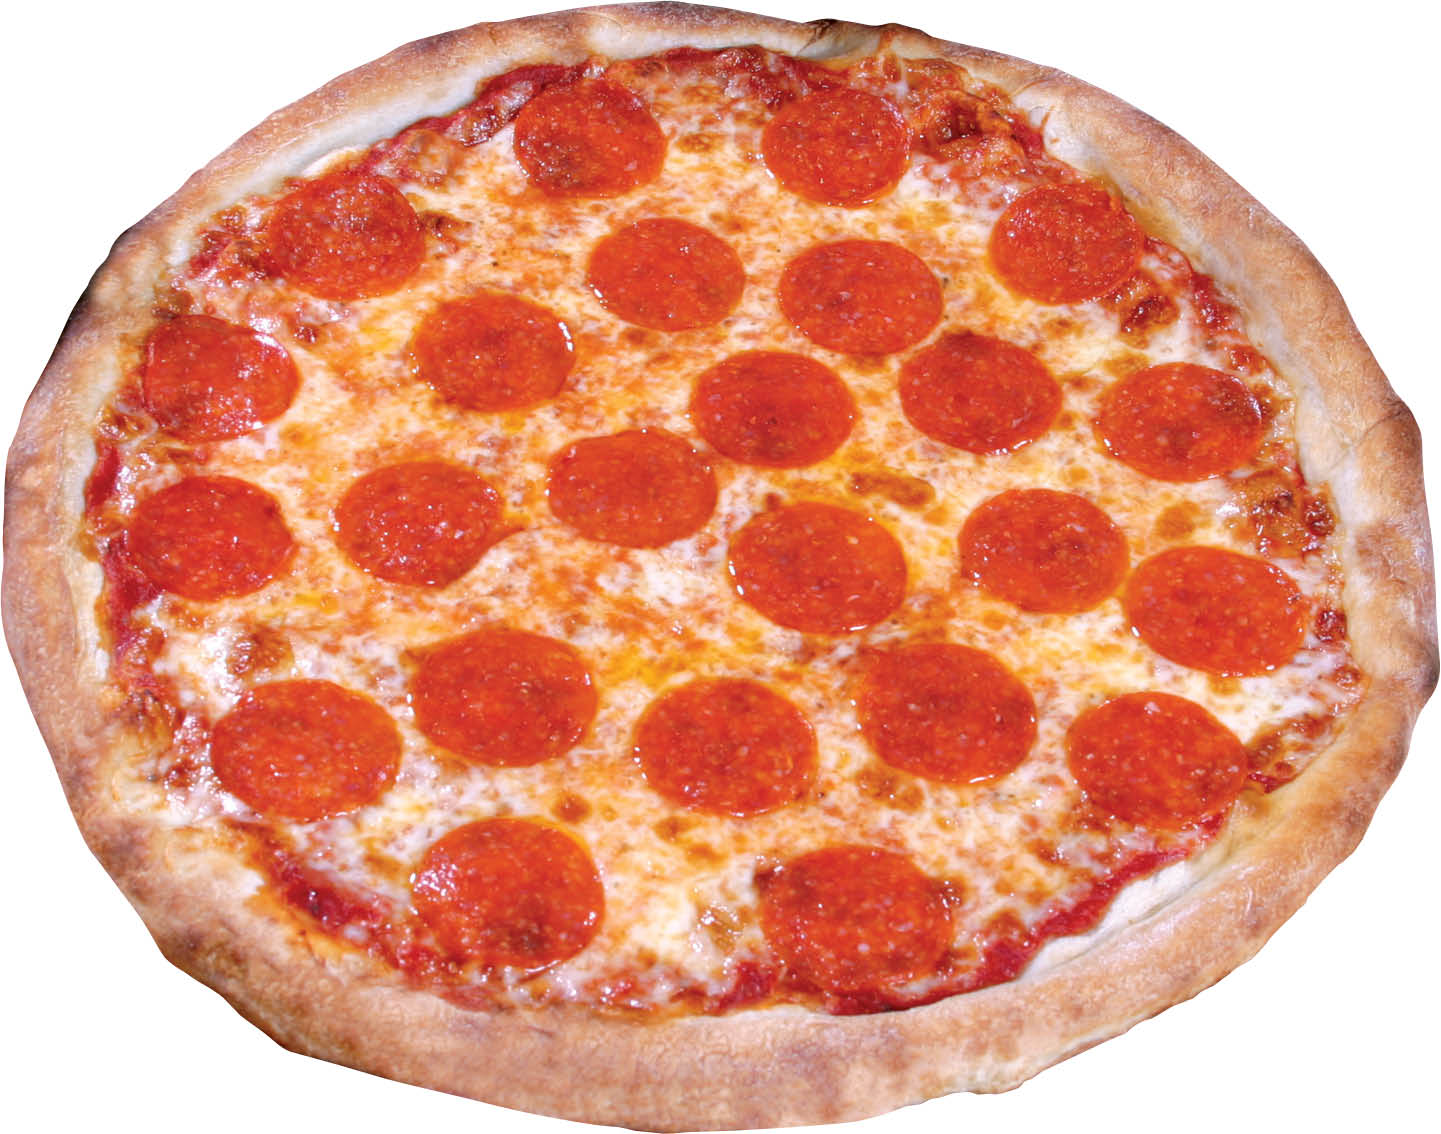 photo of pepperoni pizza from Mancino's Pizza & Grinders in Brighton, MI